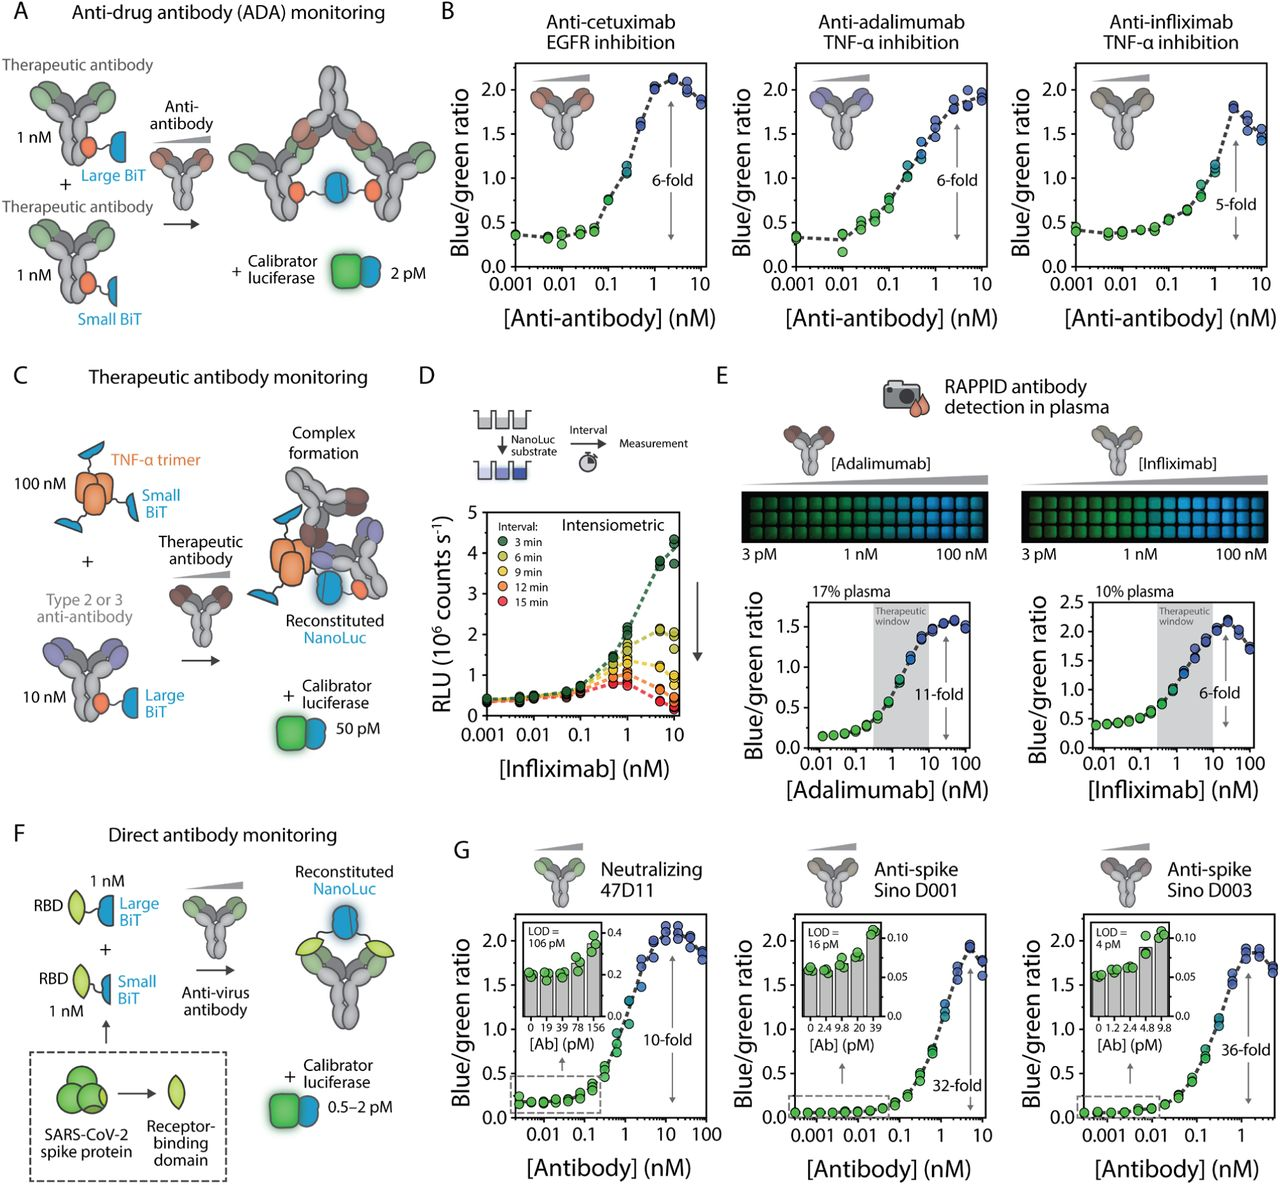 RAPPID enables versatile monitoring of clinically relevant antibodies. a , Schematic overview of RAPPID sensors for the detection of anti-drug antibodies (ADAs). Use of a commercially available therapeutic antibody conjugated to both Gx-LB and Gx-SB enables binding of the ADA and formation of a luminescent ternary complex. b , Ratiometric sensor response curves of RAPPID sensors for anti-cetuximab, anti-adalimumab, and anti-infliximab, respectively. c , Schematic overview of RAPPID sensors for detection of therapeutic antibodies adalimumab and infliximab using target antigen TNFα fused to SB, and the anti-antibody conjugated to Gx-LB. d , Intensiometric detection of infliximab without calibrator luciferase. Luminescent measurements were performed at various intervals following addition of the NanoLuc substrate. e , Sensor response for adalimumab (left) and infliximab (right) detection in diluted plasma. The same sample was used for detection with a digital camera (top) and the plate reader (bottom). f , Schematic overview of RAPPID sensors for direct monitoring of anti-virus antibodies against the receptor binding domain (RBD) of <t>SARS-CoV-2</t> spike protein. LB and SB were expressed as fusion proteins with the RBD, enabling detection of all RBD-targeting antibodies. g , Ratiometric sensor response curves for neutralizing antibody 47D11 (left) 44 , and commercially available anti-spike <t>D001</t> (center) and D003 (right) 43 . Insets show sensor response at low target concentrations, which allowed calculation of the limit of detection, as indicated in the graphs. Experiments in b , d , e , g were performed in triplicate at sensor and calibrator concentrations as indicated in a , c , f , respectively. Reaction mixtures were prepared in buffer (PBS (pH 7.4), 0.1% (w/v) BSA) and incubated for 1 hr at room temperature before addition of NanoLuc substrate and recording of the emission spectra. The blue/green ratio was calculated by dividing bioluminescent emission at